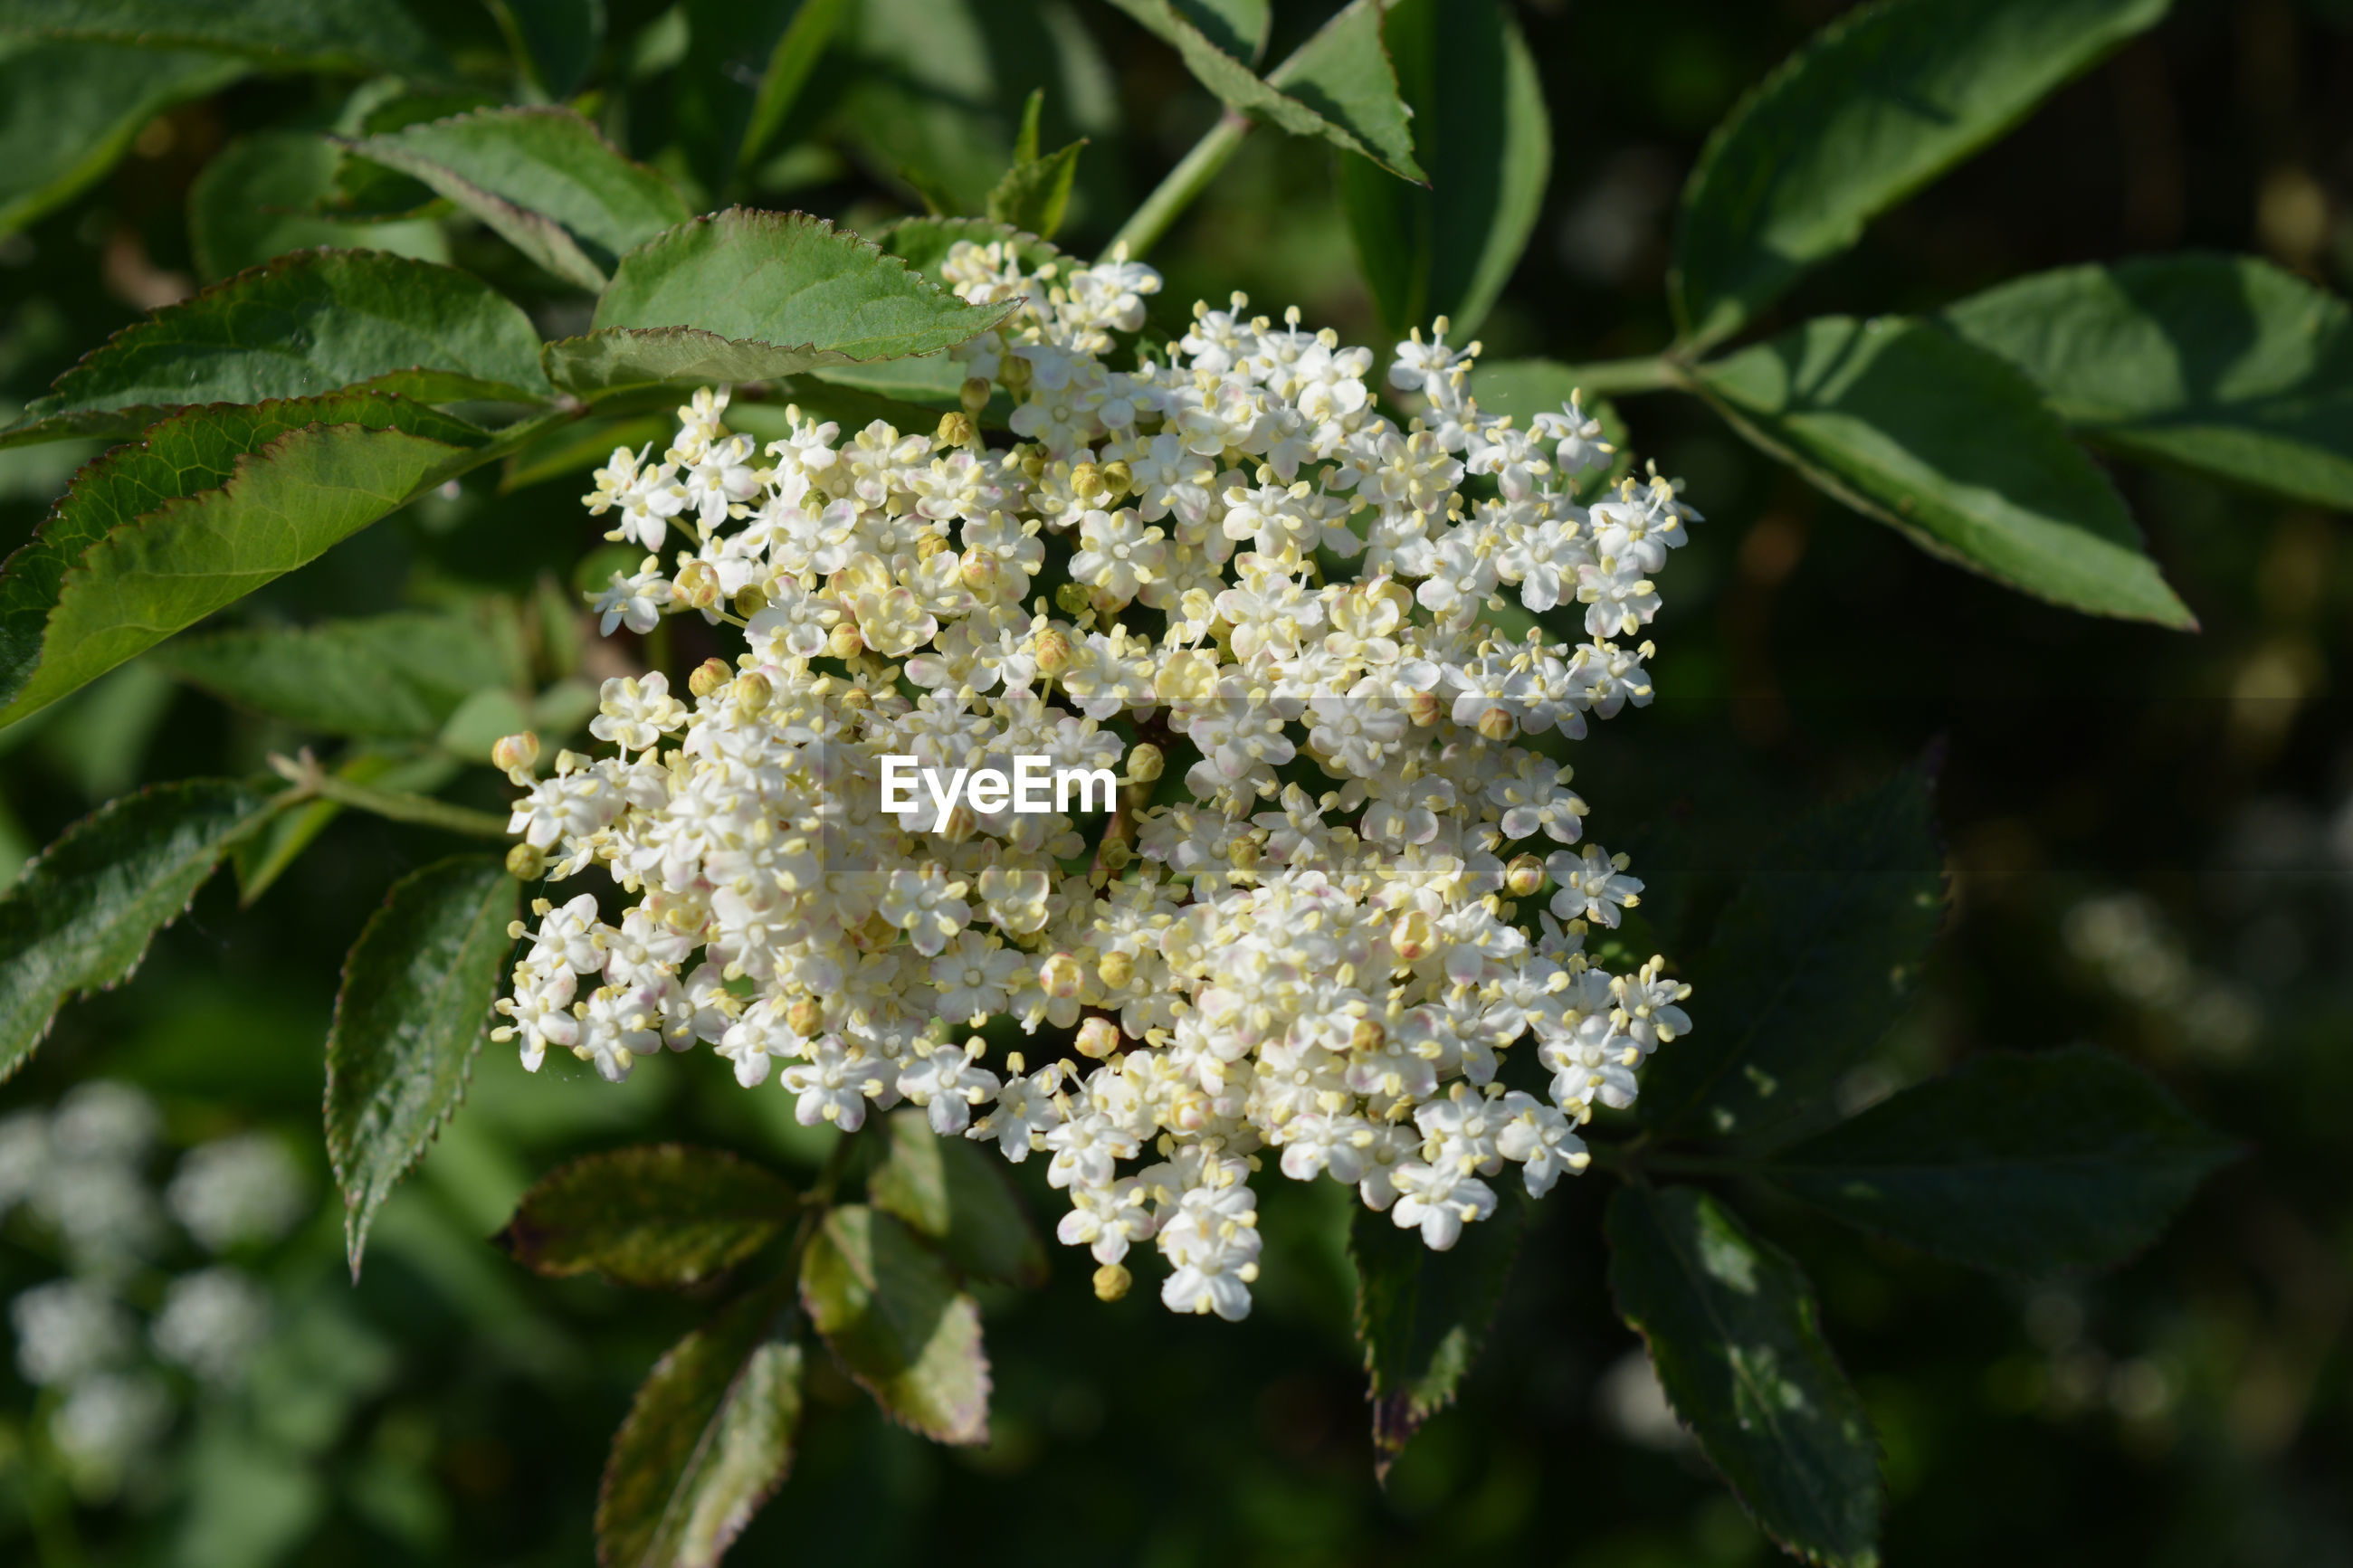 Tiny white flowers of the elderflower growing in a british hedgerow, also known as sambucus nigra